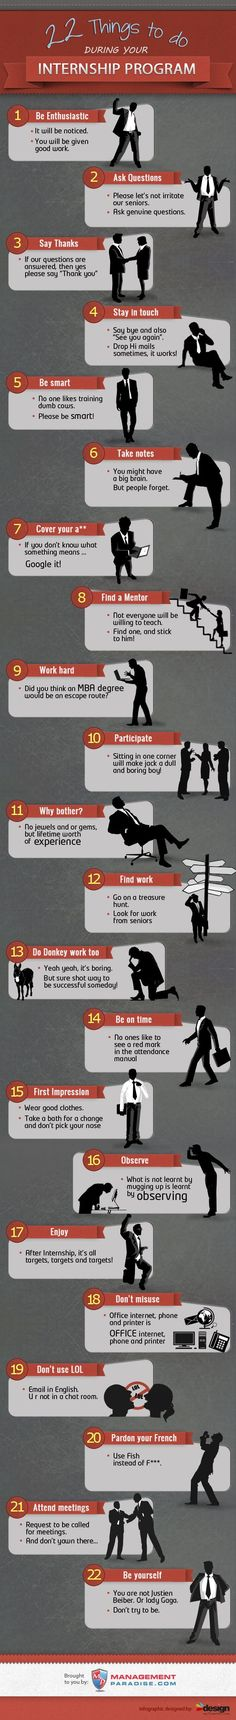 22 Things to Do During Your Summer Internship [Infographic]